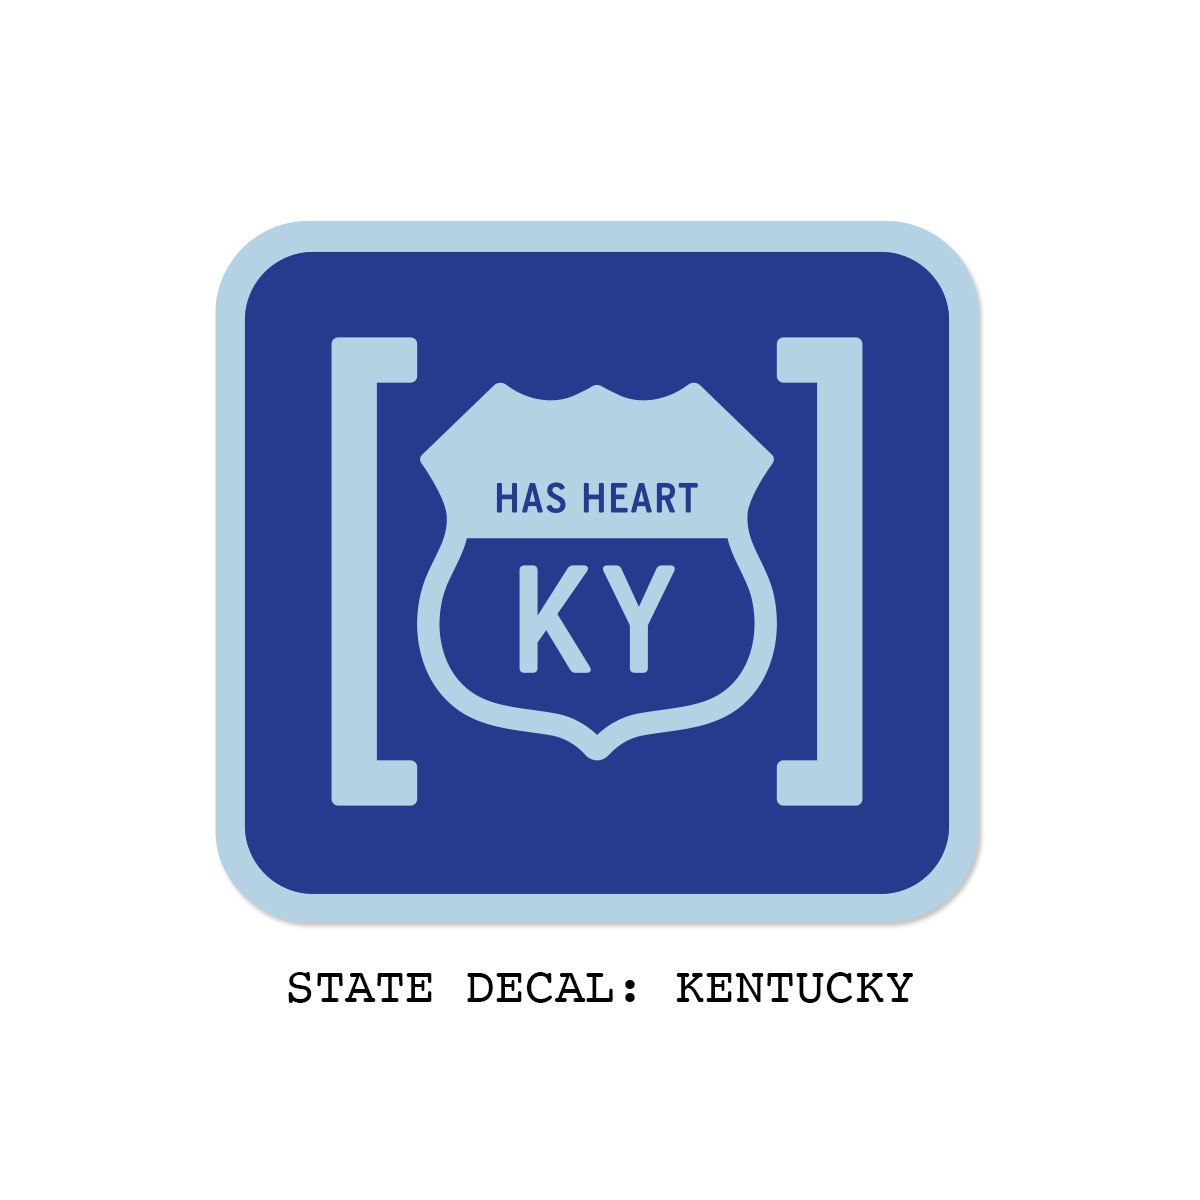 hasheart-statedecal-KY